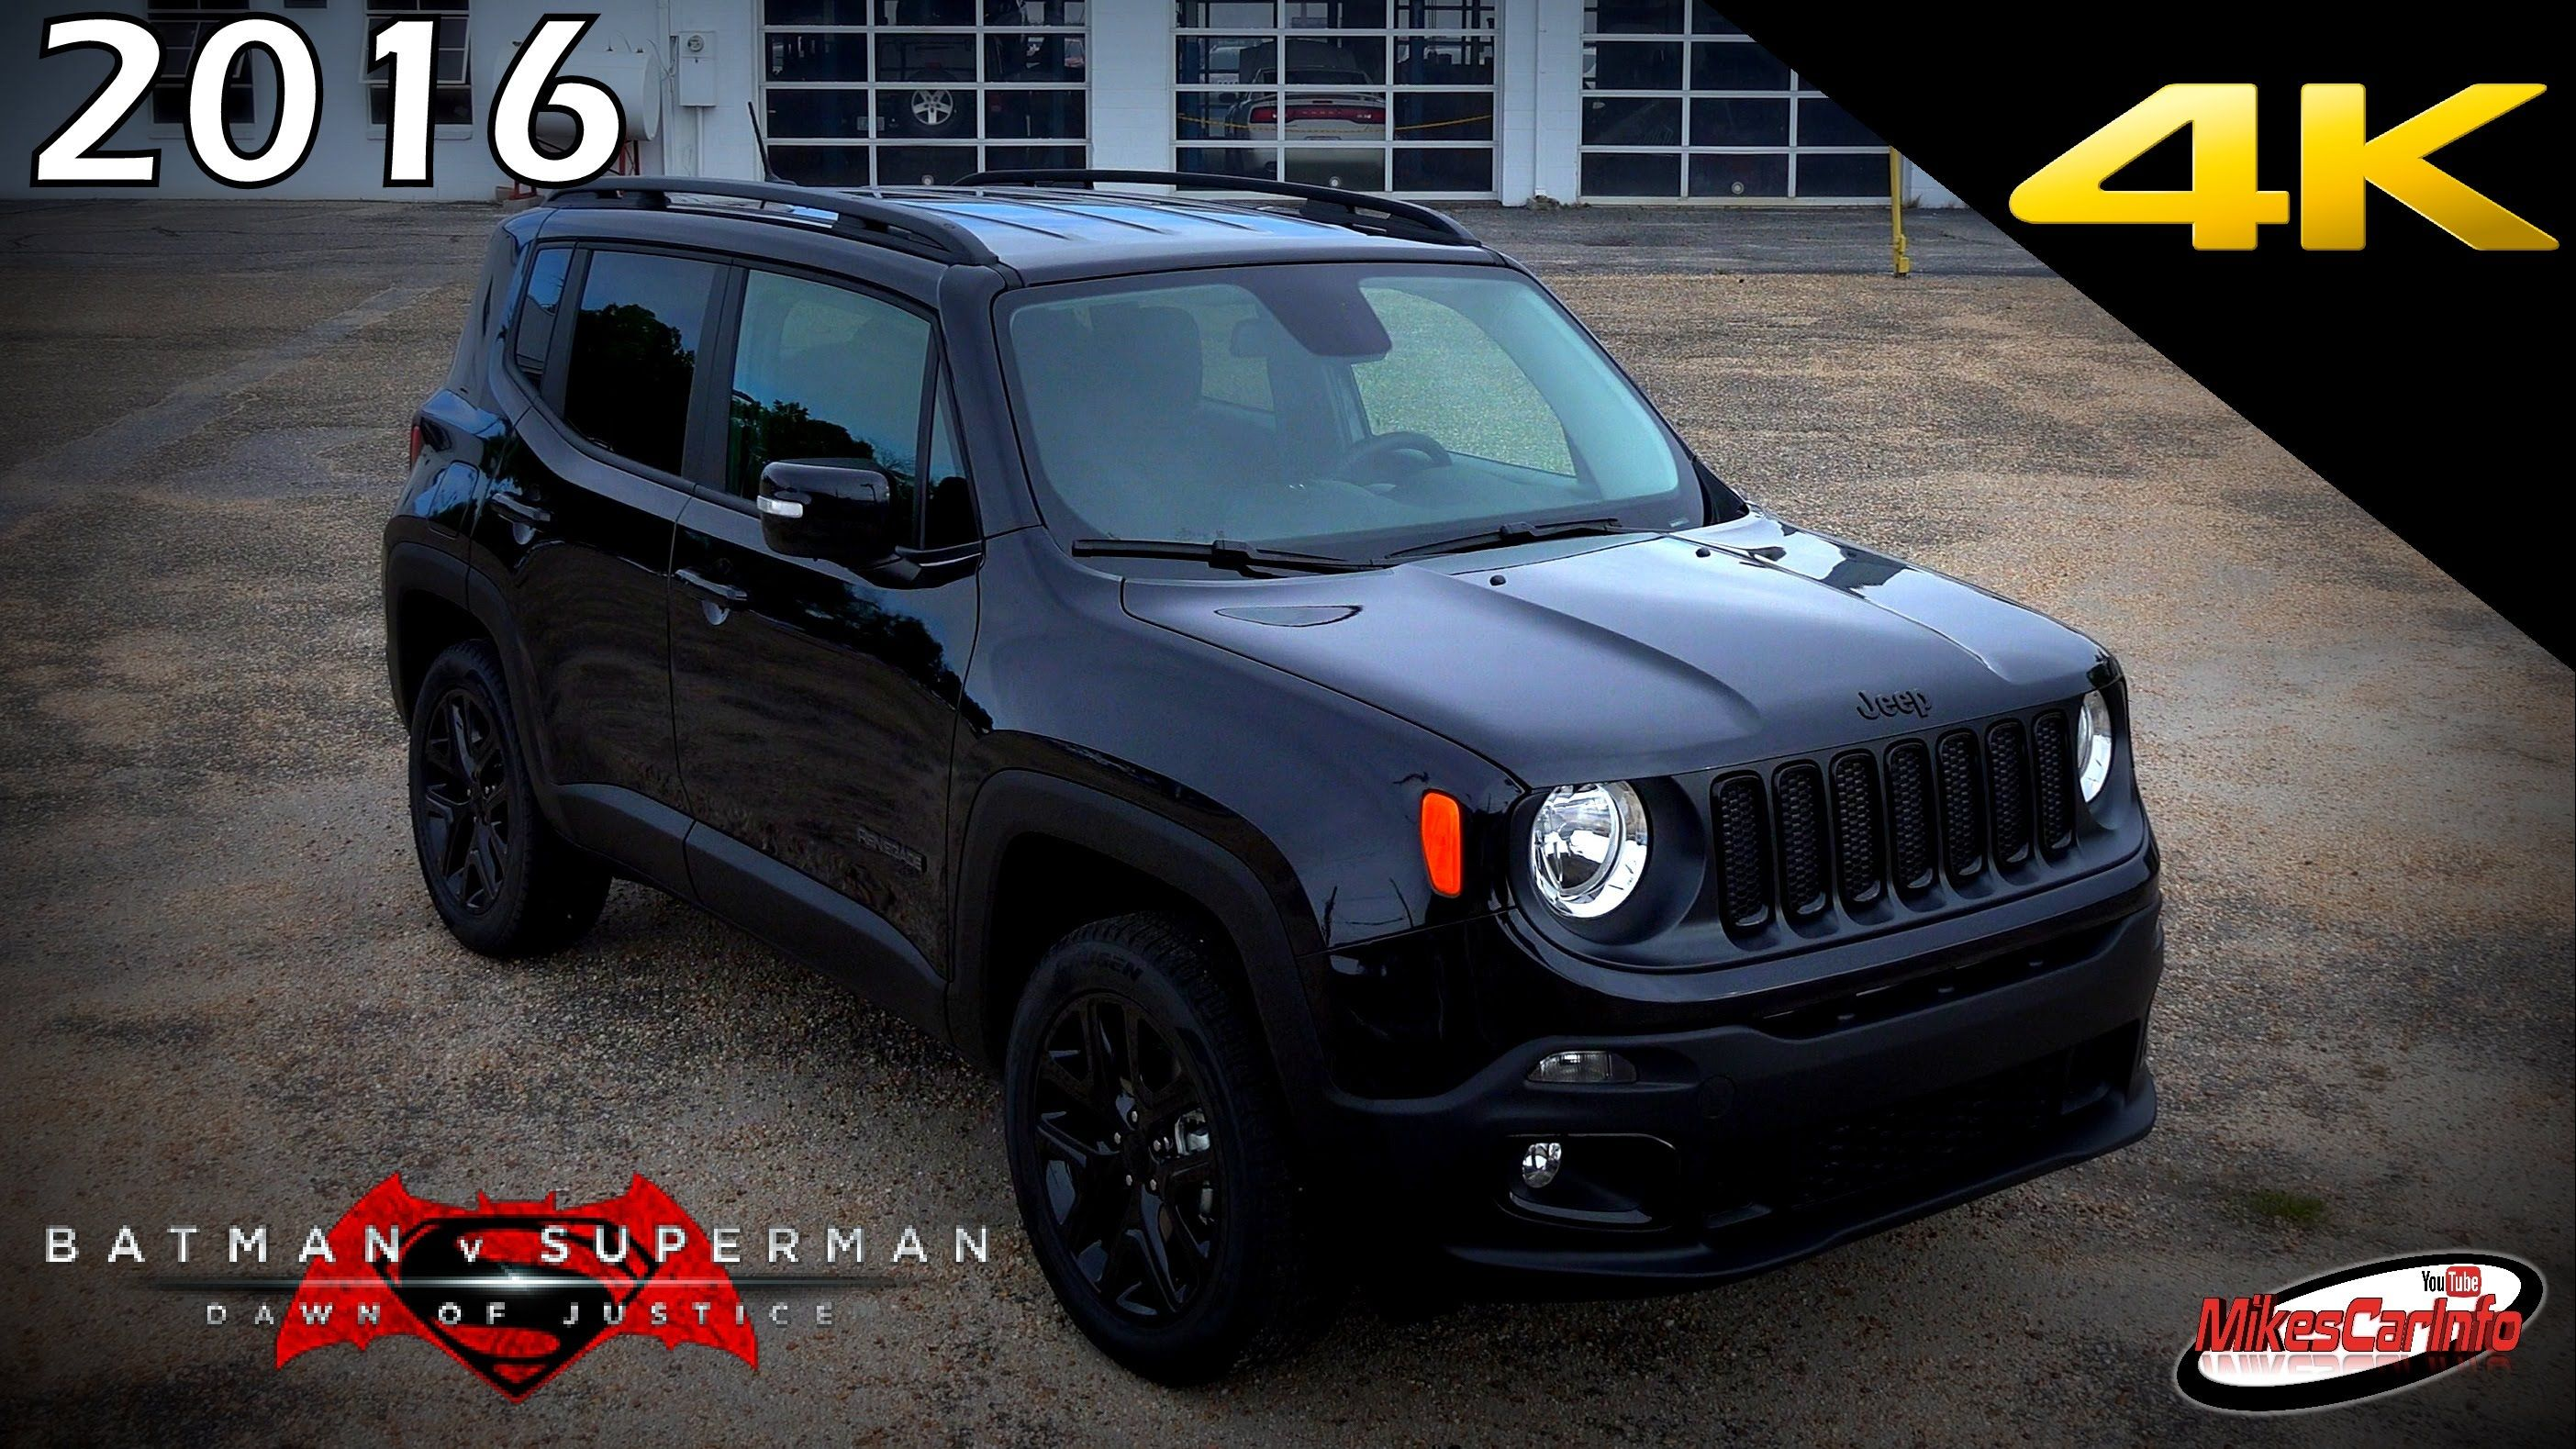 2016 Jeep Renegade Batman V Superman Dawn Of Justice Special